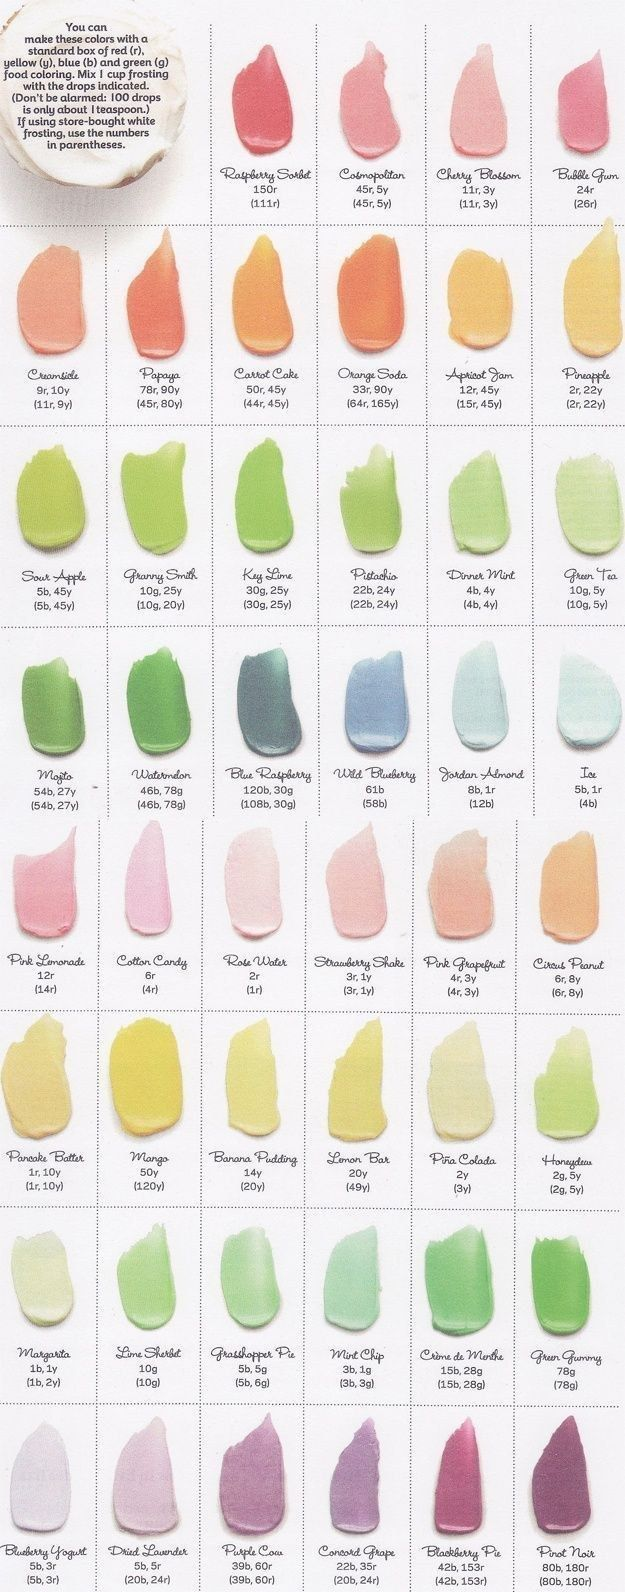 Cake Decorating Frosting Colors : 25+ best ideas about Icing color chart on Pinterest ...